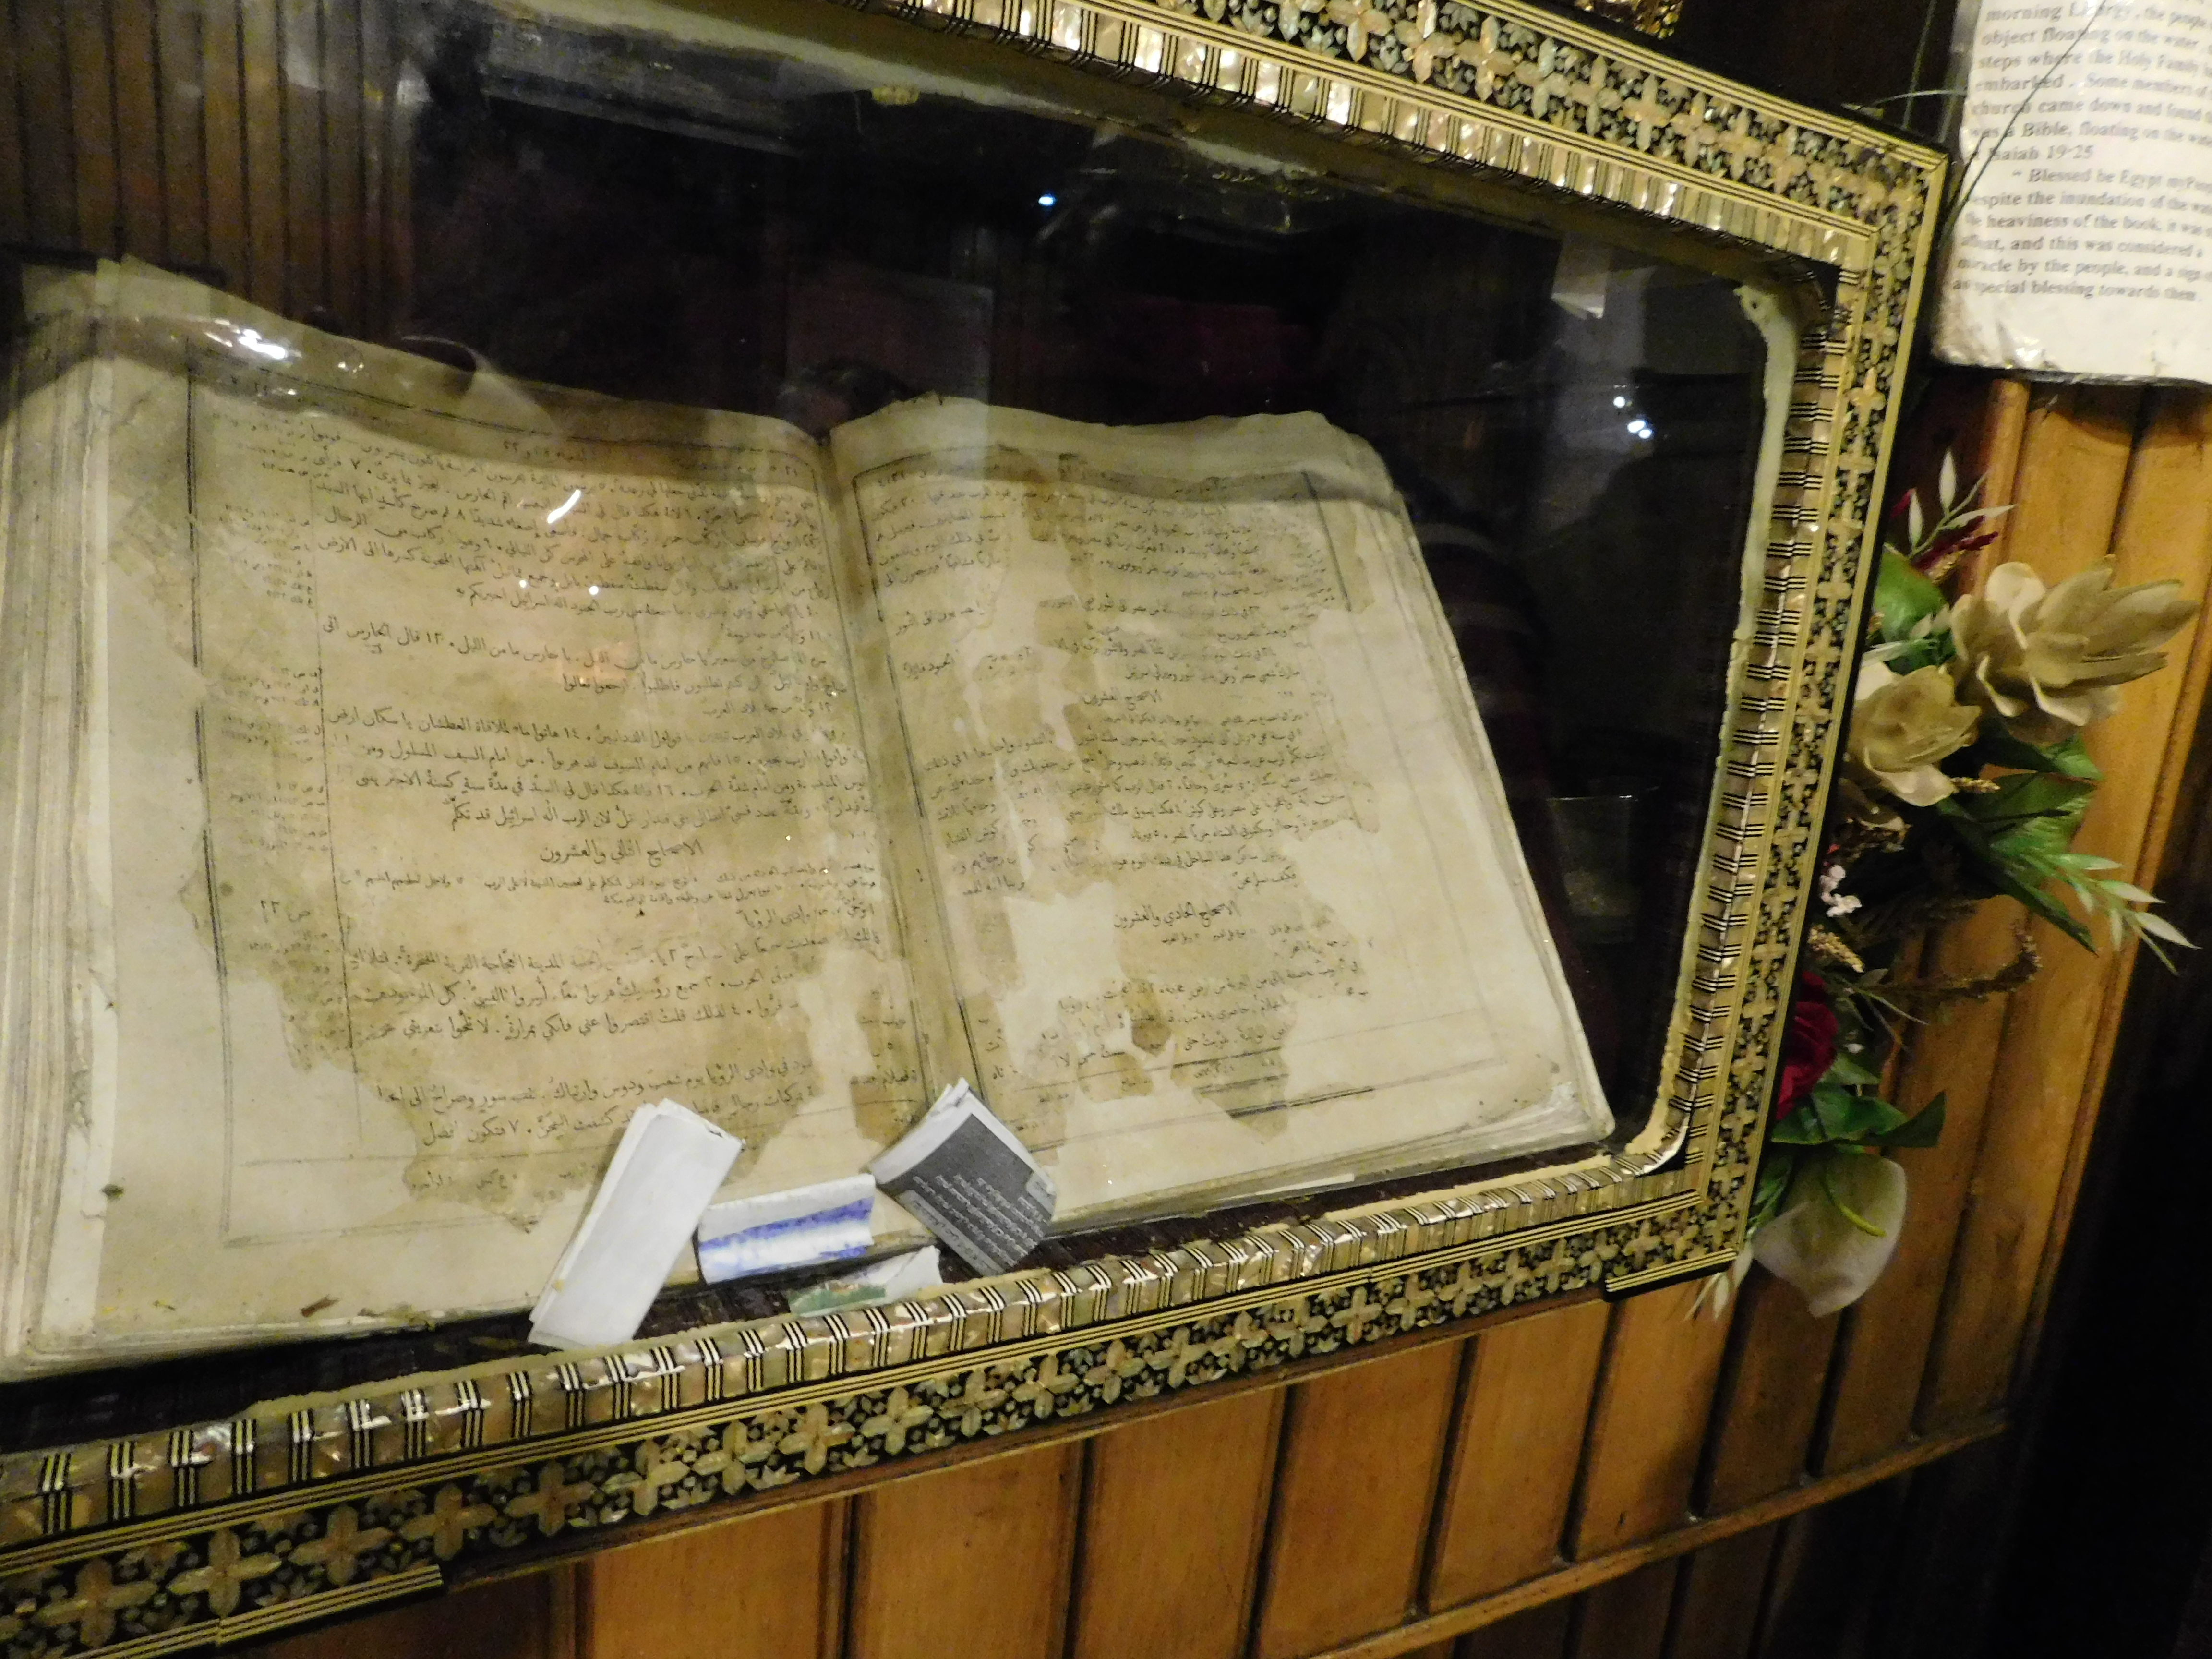 FLOATING BIBLE displayed at St. Mary Church open to  page that says I Love Egype my people